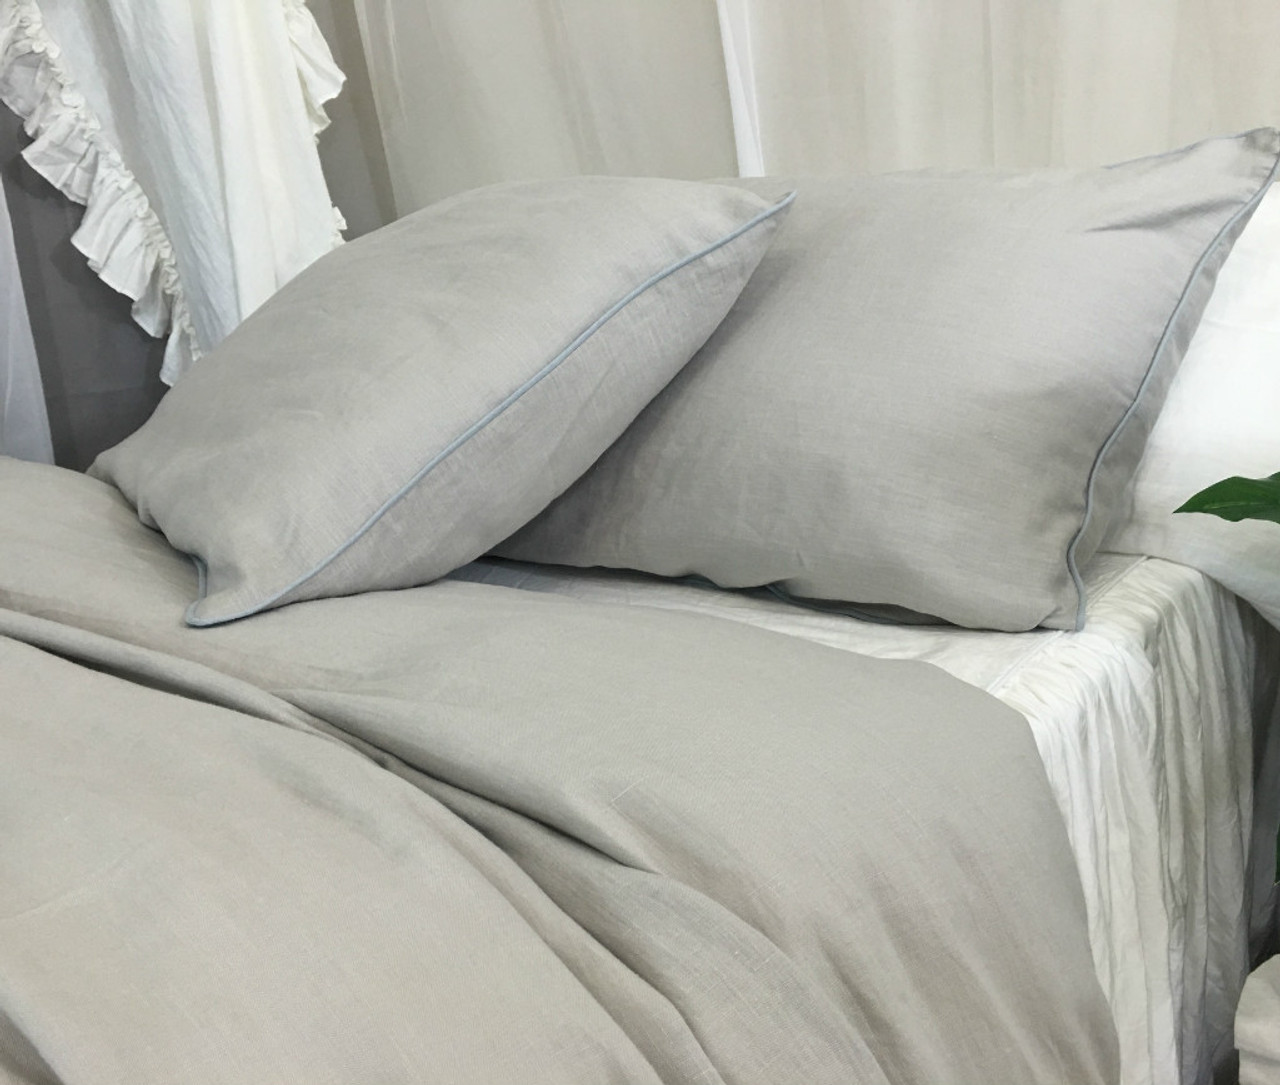 sham italian cover linens linen covers luxury grey large bed sheet duvet shop pure silver